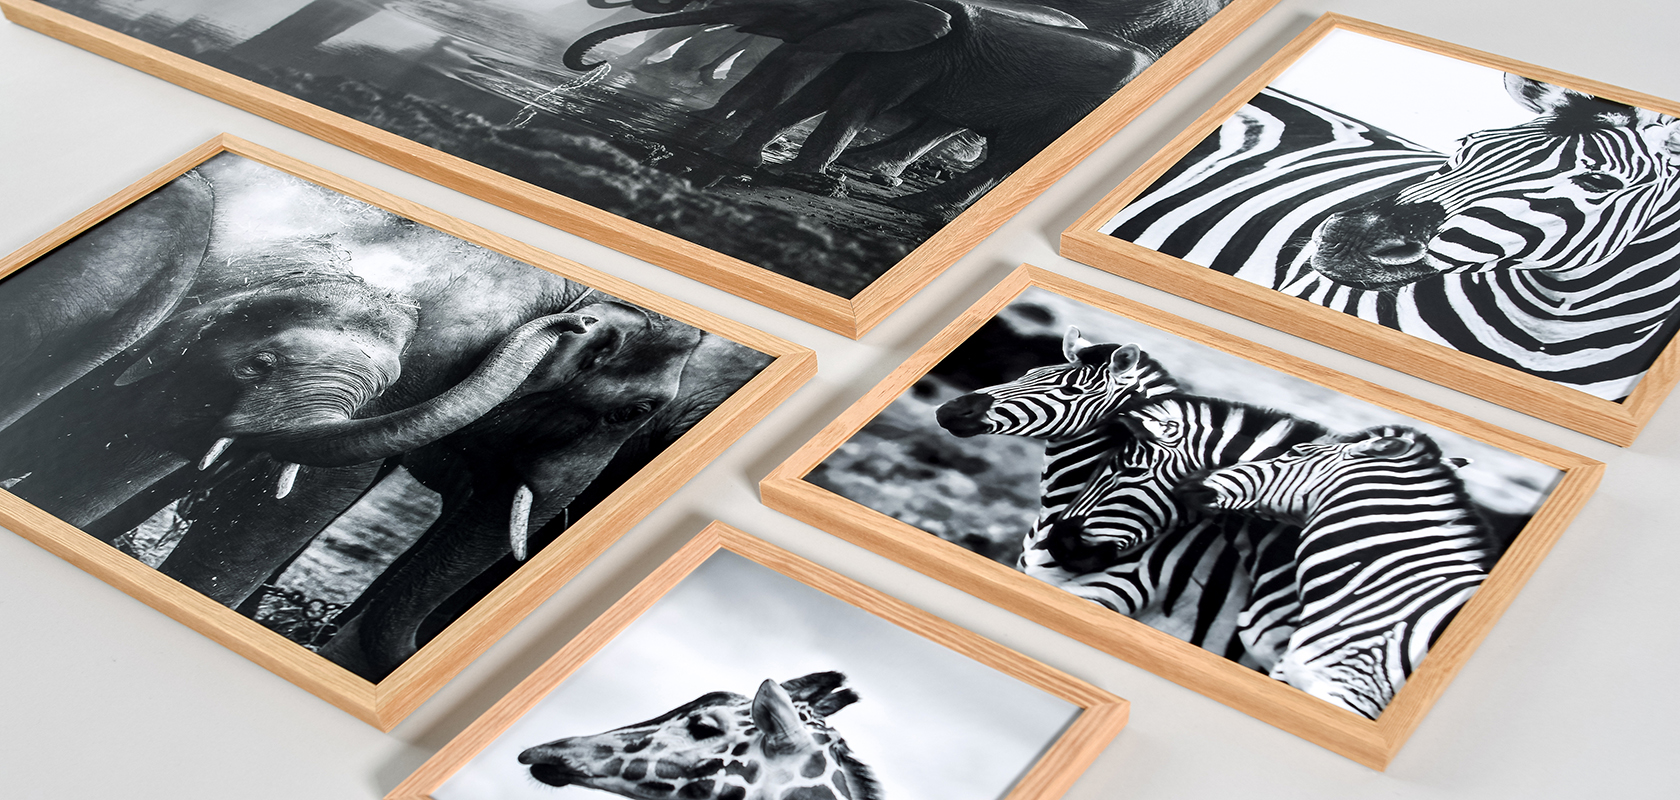 High quality photo prints, archival, acid-free papers